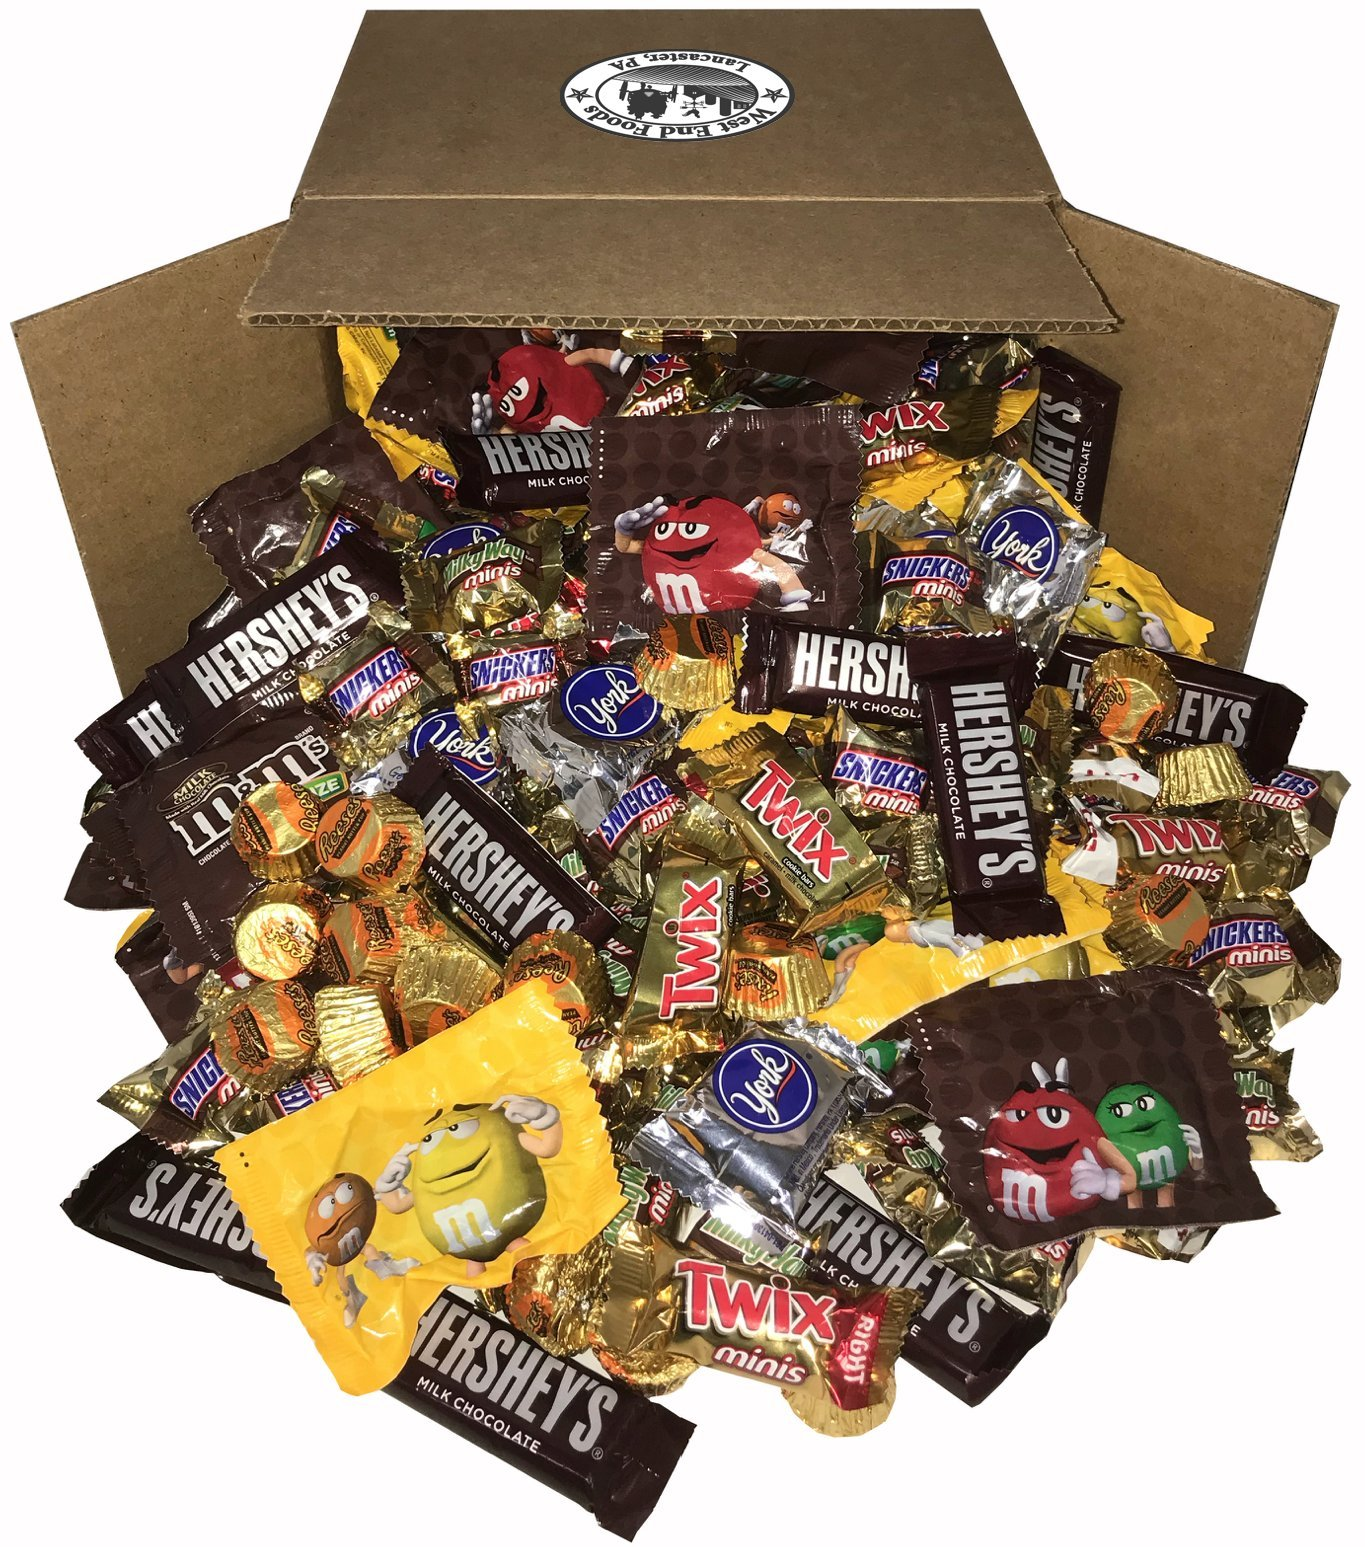 Chocolate Candy Assorted (8 Pounds) Snickers Bar, M&Ms Milk, Peanuts, Reese's, Milky Way, Twix, Hershey, York Mini Size Bulk Snacks for Halloween by West End Foods (Image #1)